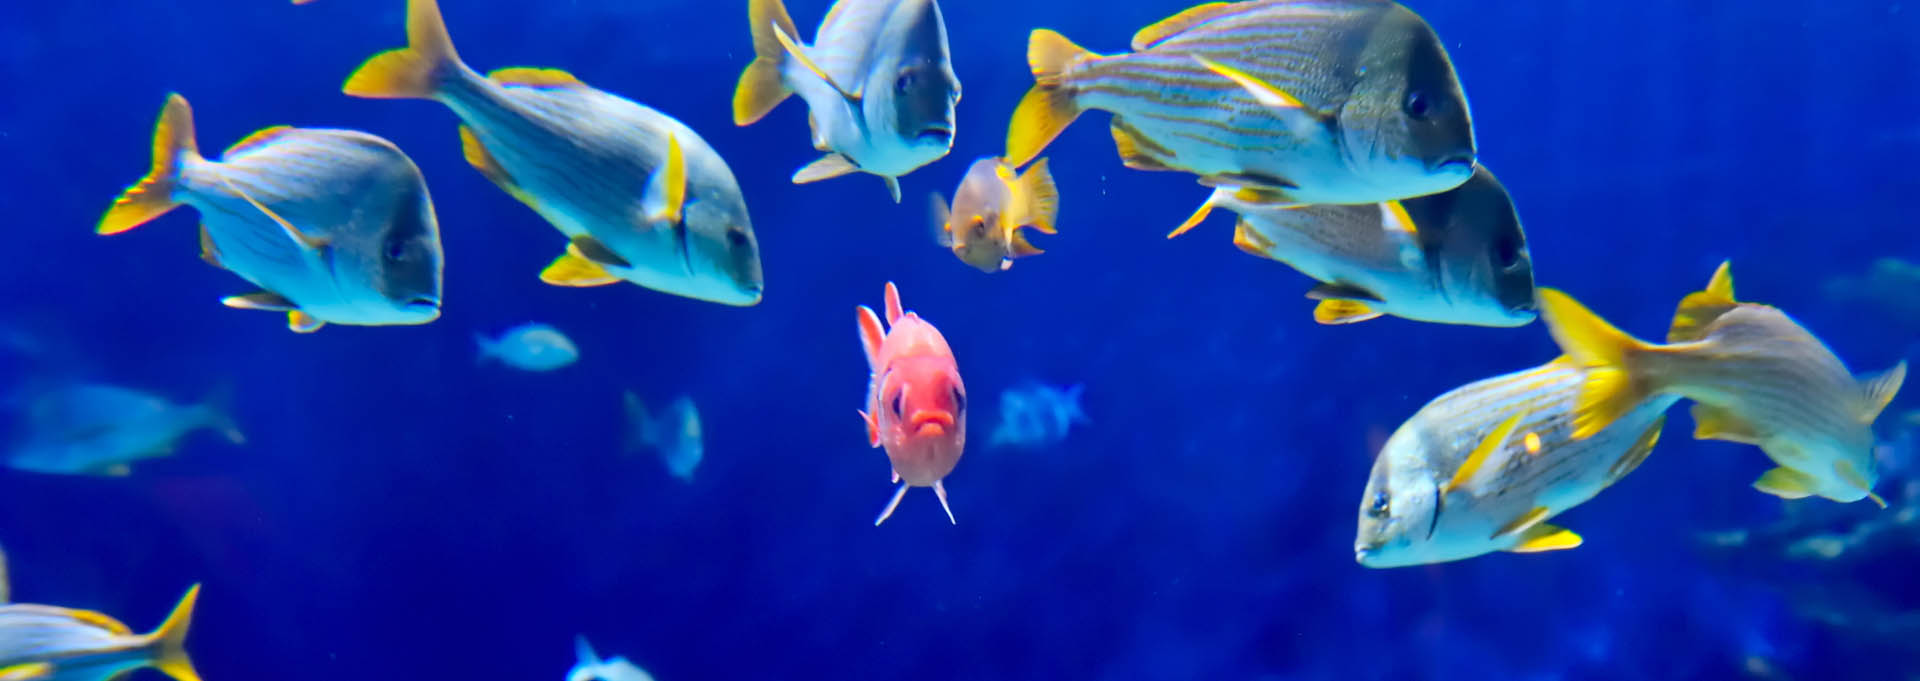 underwater-image-of-tropical-fishes_Banner